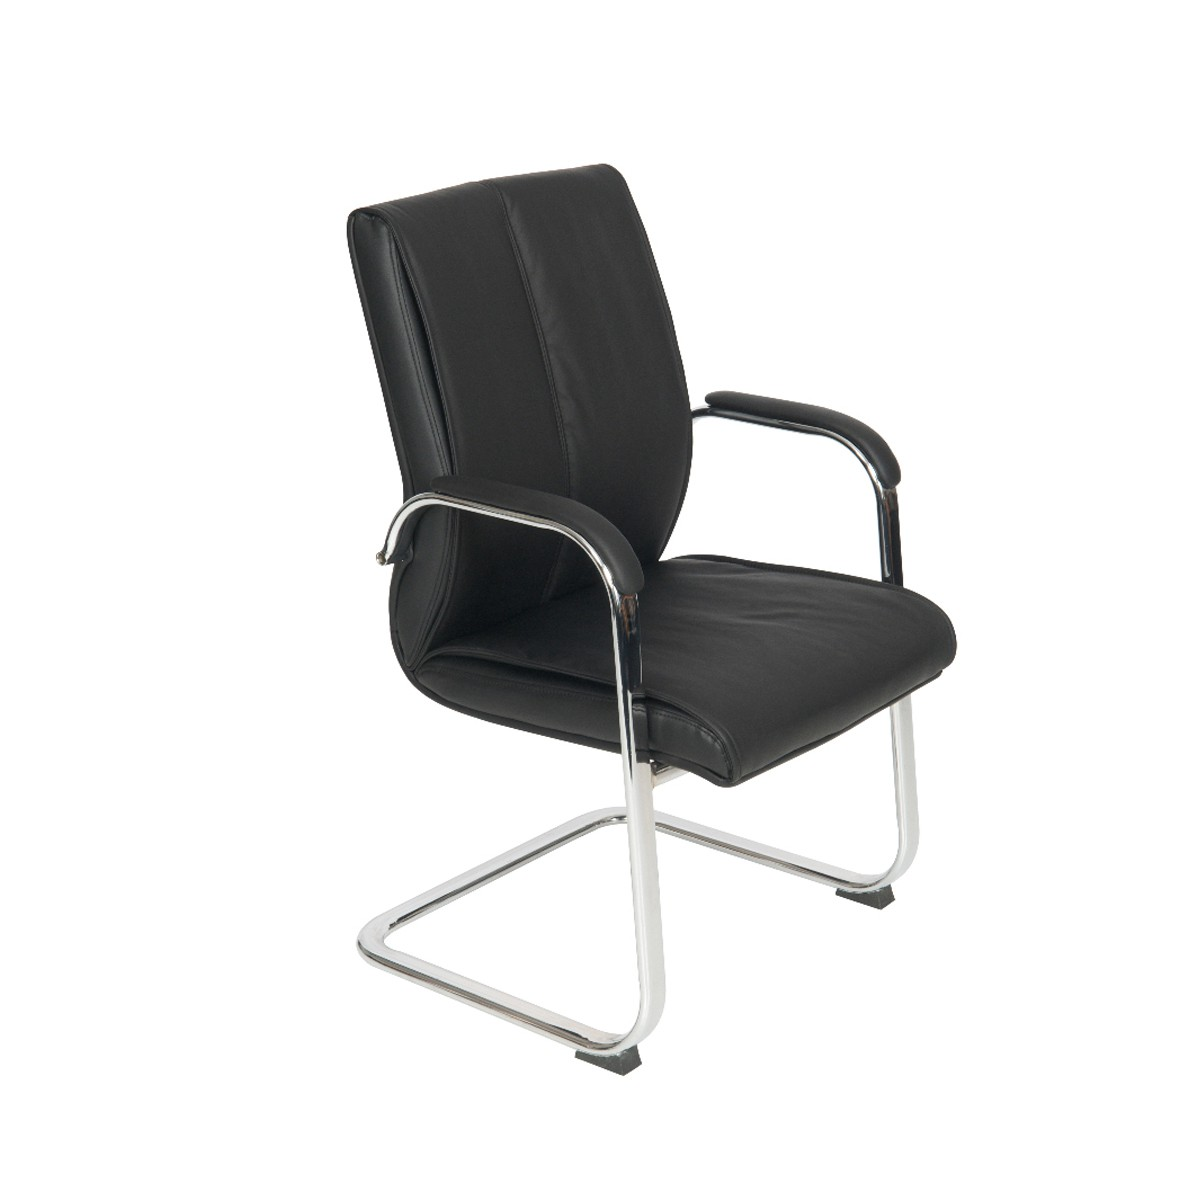 Medium Back Cantilver Executive Boardroom Arm Chair Black Faux Leather